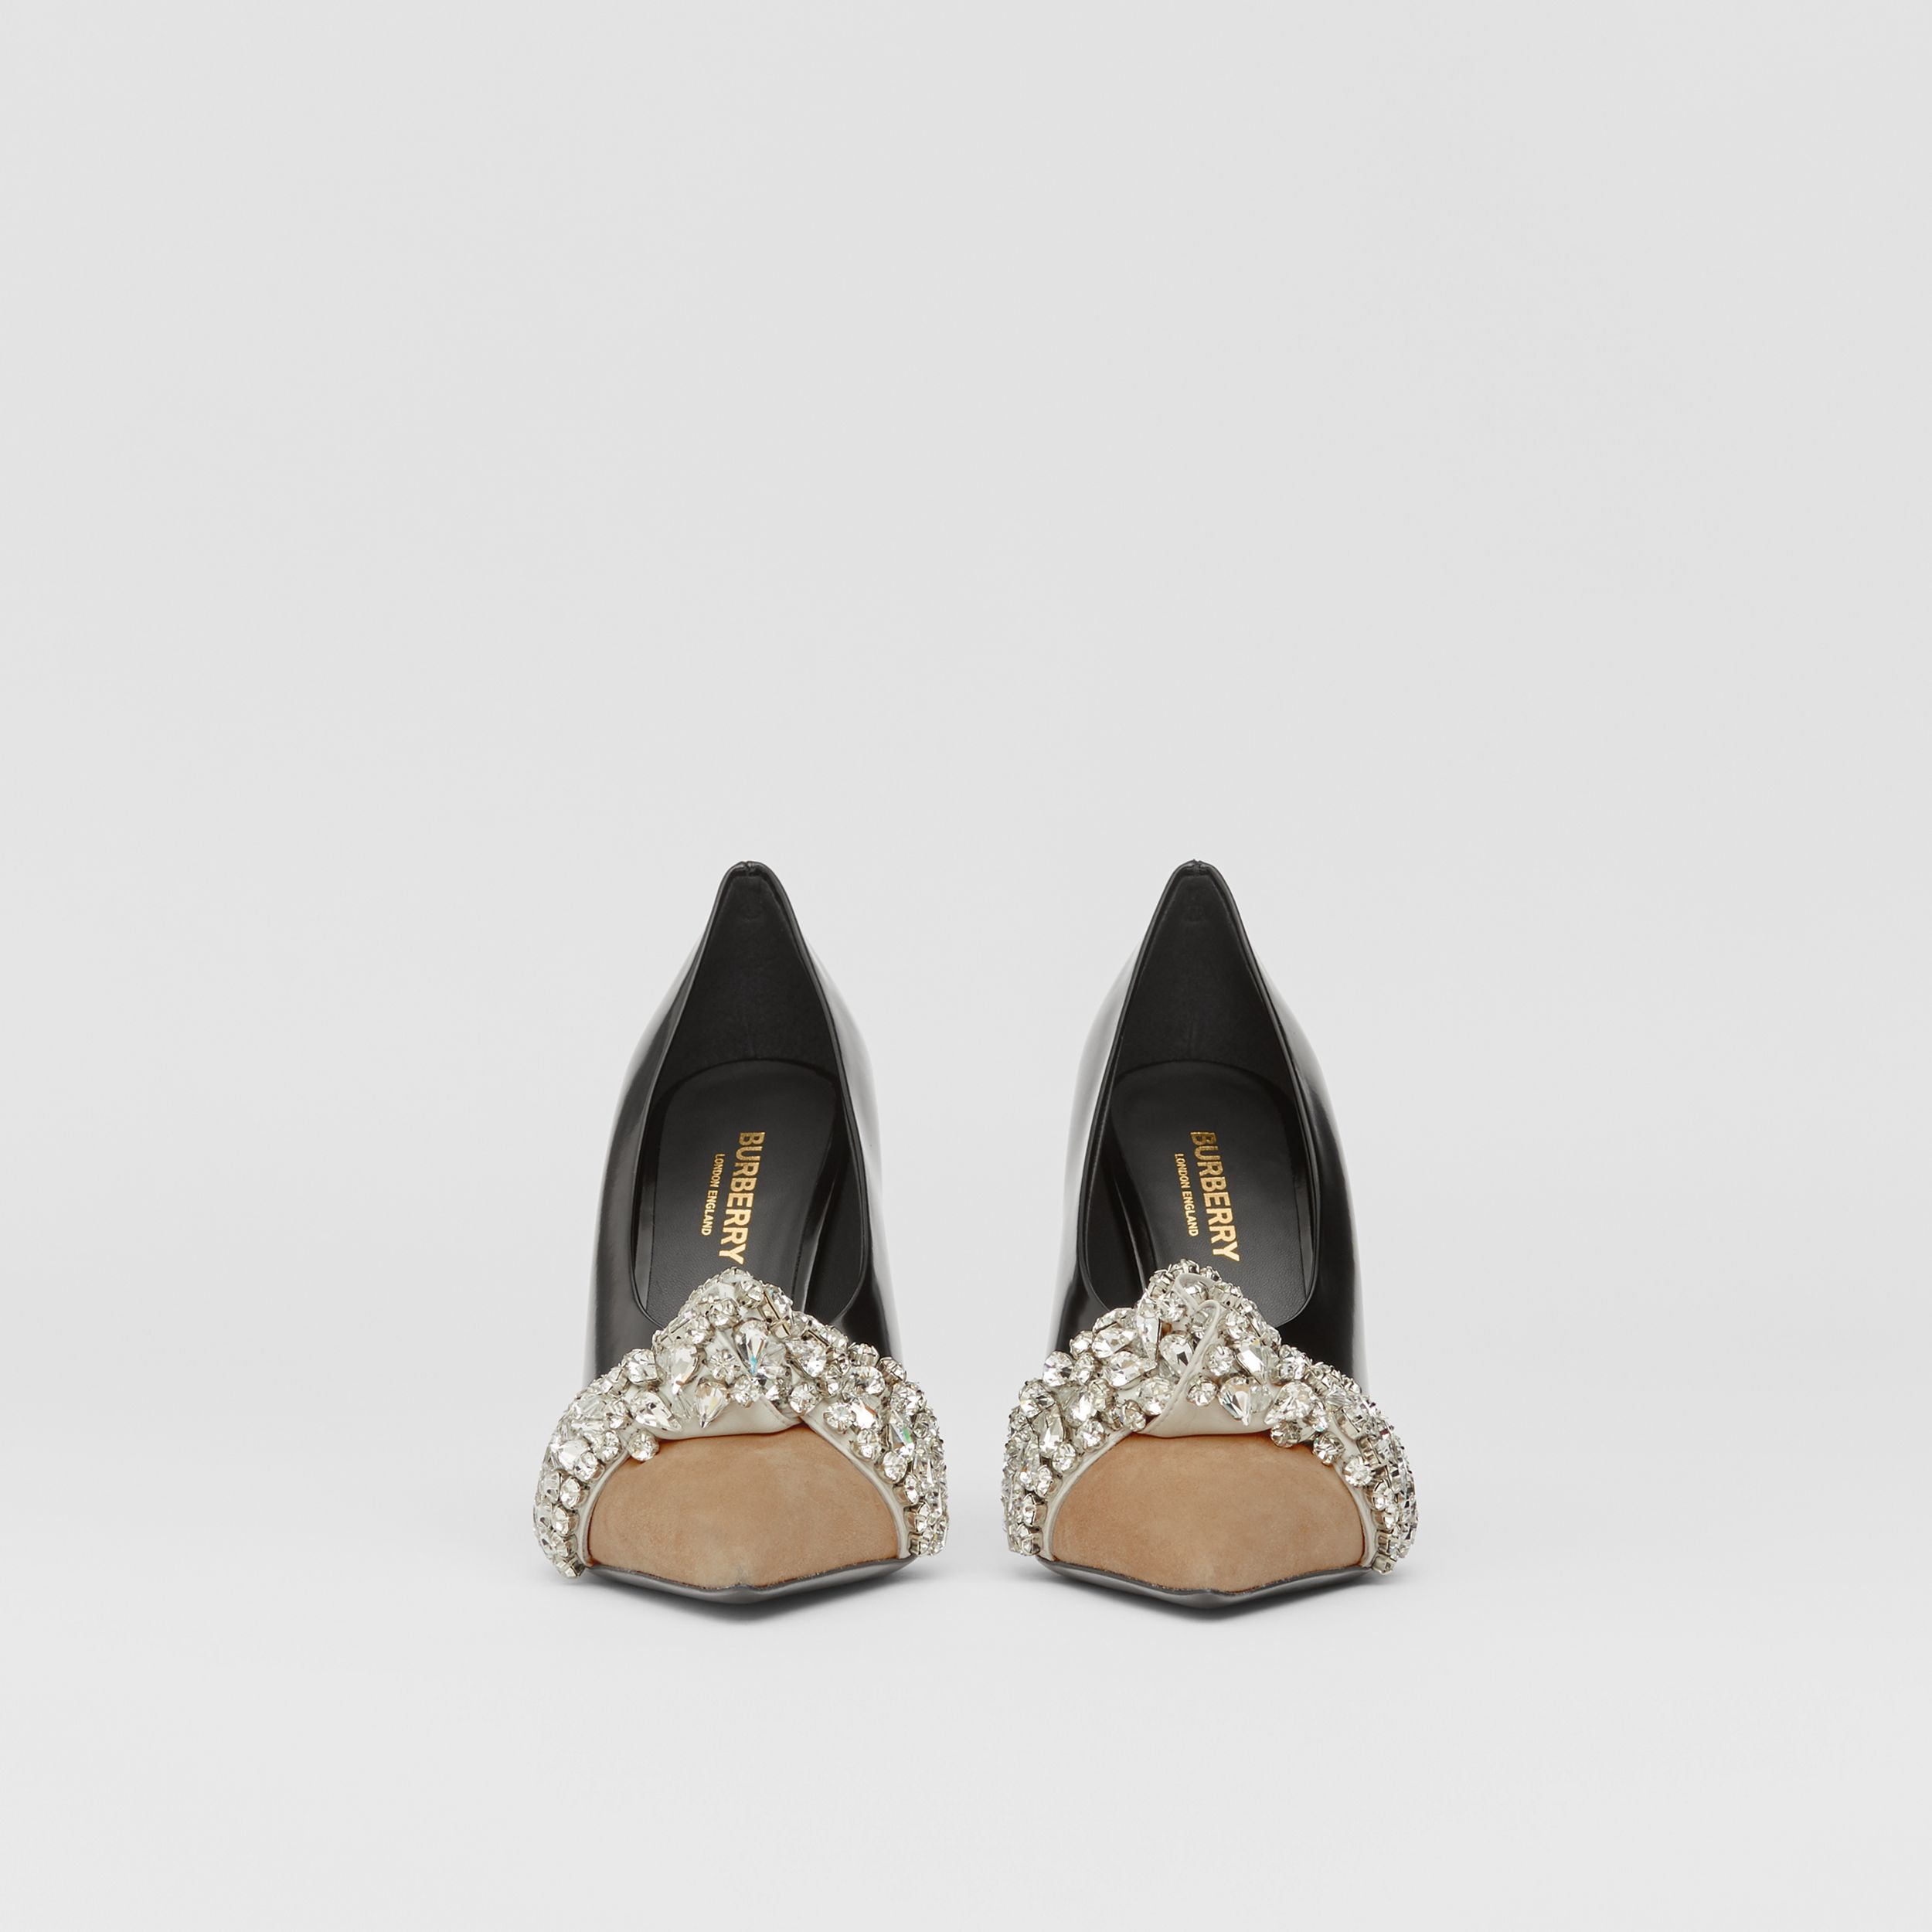 Crystal Detail Leather and Suede Point-toe Pumps in Black - Women | Burberry - 4